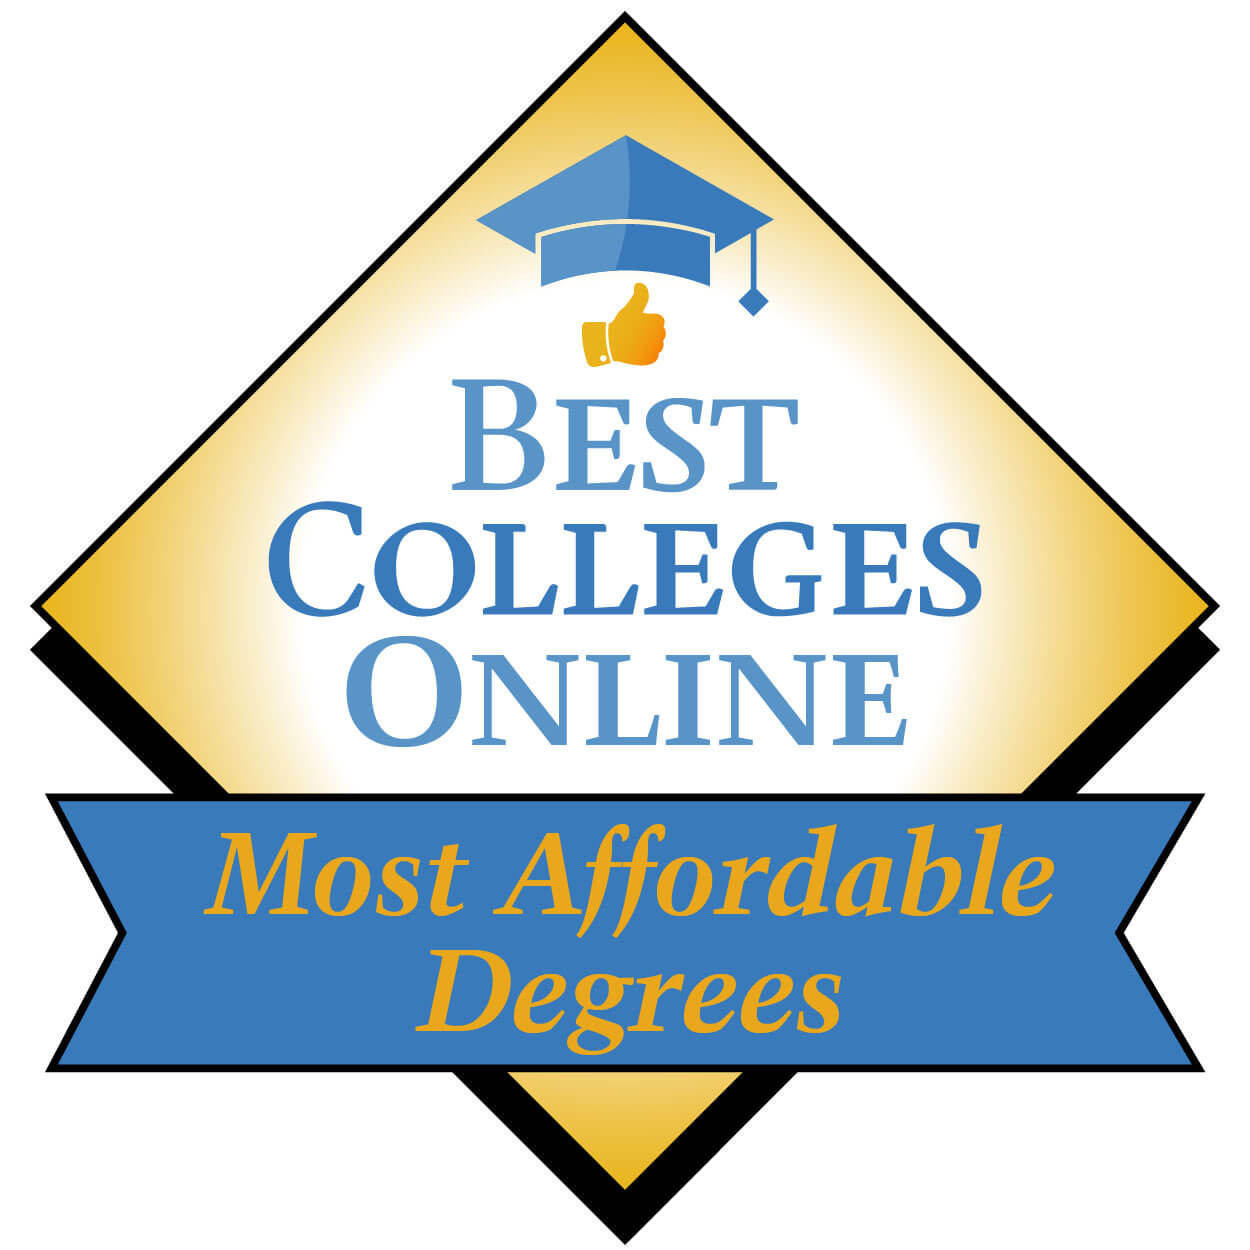 Best Colleges Online - Most Affordable Degrees List